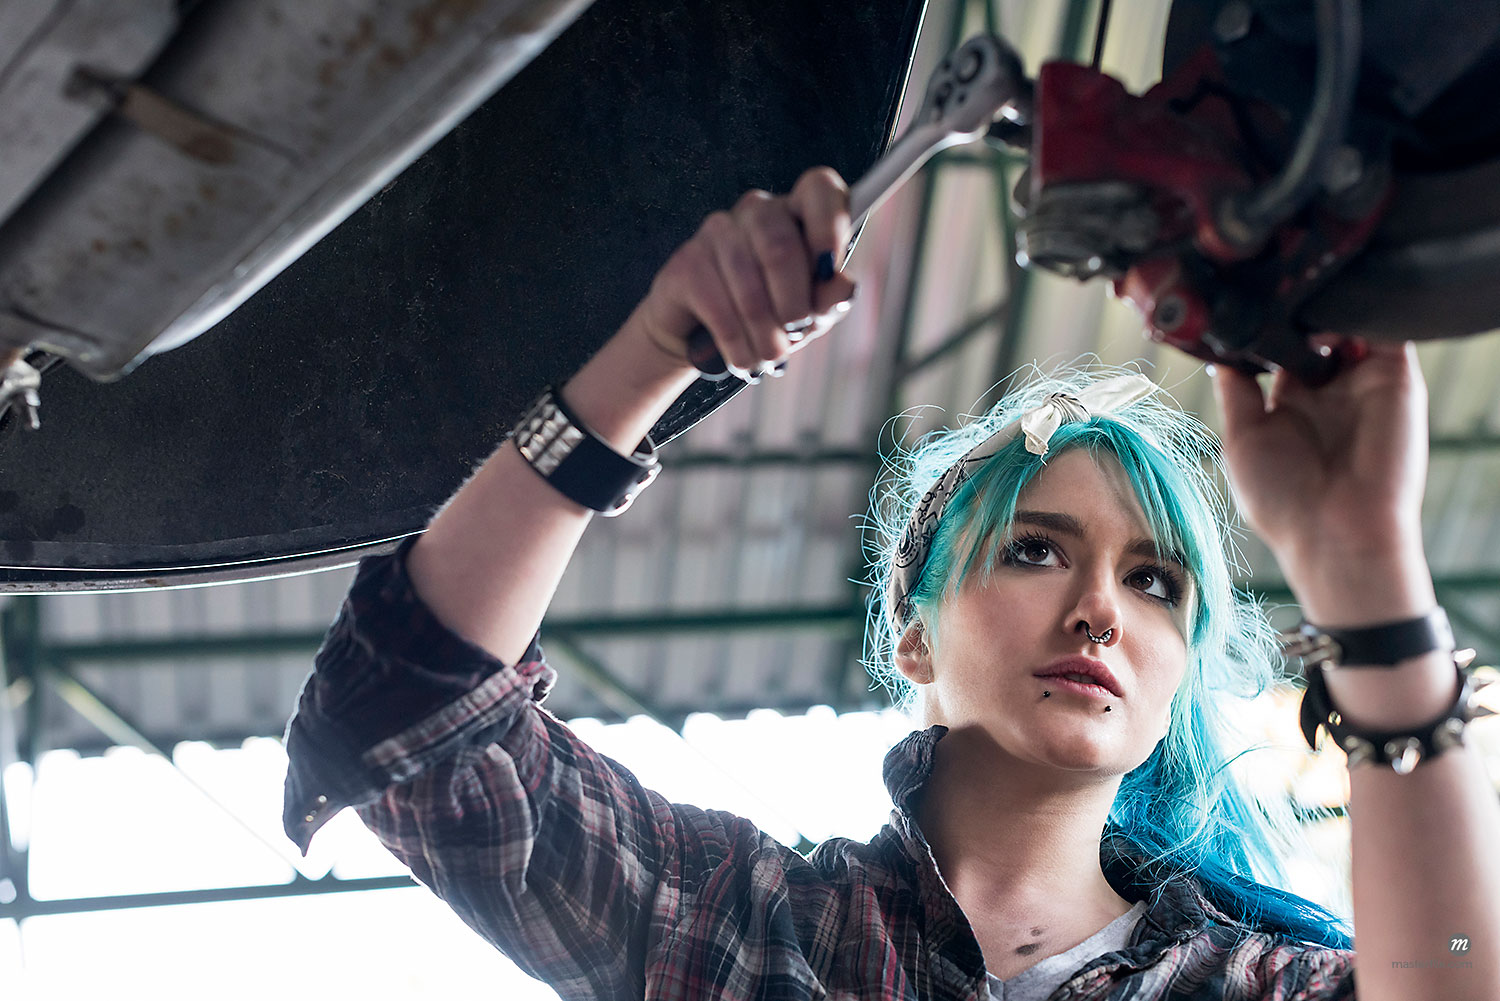 Young female mechanic with blue hair fixing car in auto repair shop  © Masterfile